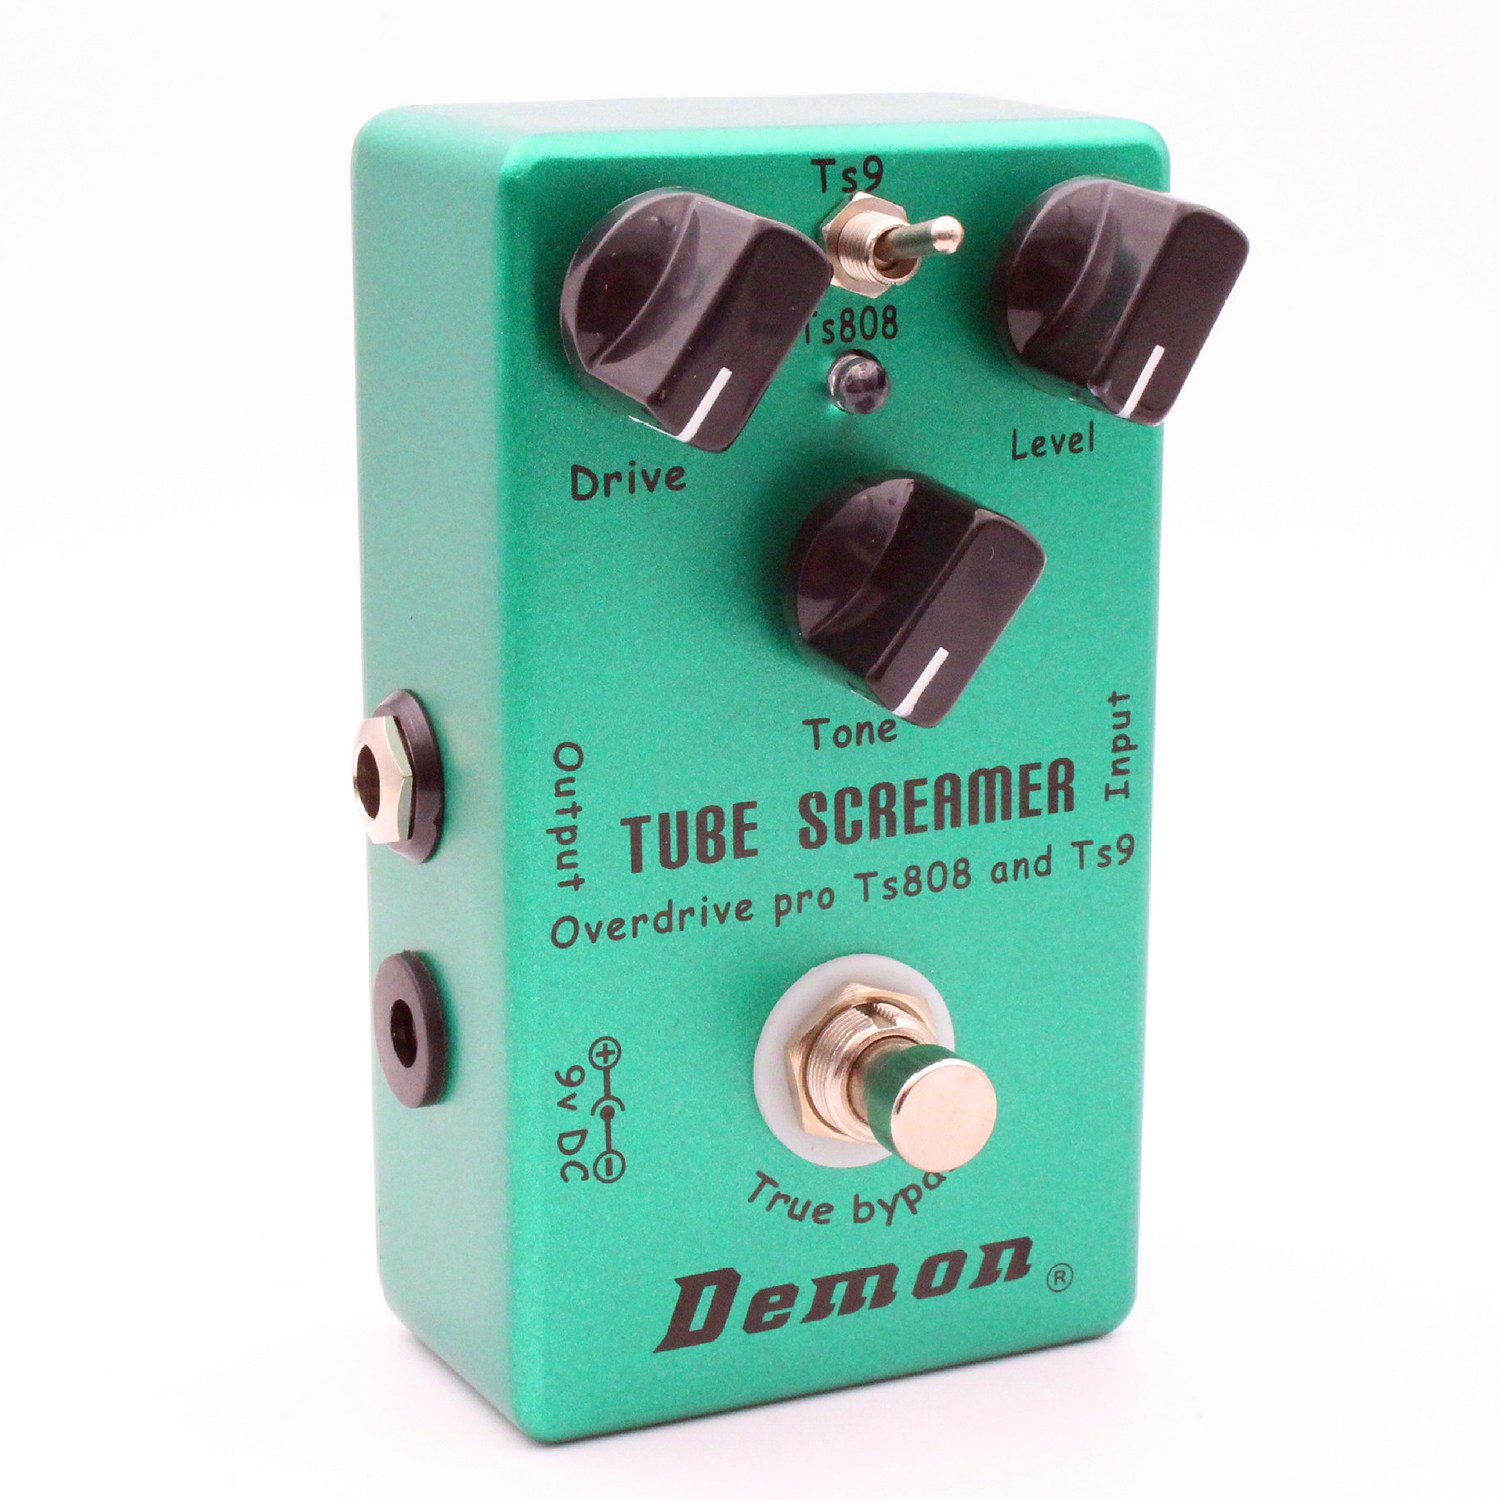 US $28 92 5% OFF|MOSKY Demon TS808 Tube Screamer Overdrive Pro Vintage  Electric Guitar Effect Pedal-in Guitar Parts & Accessories from Sports &